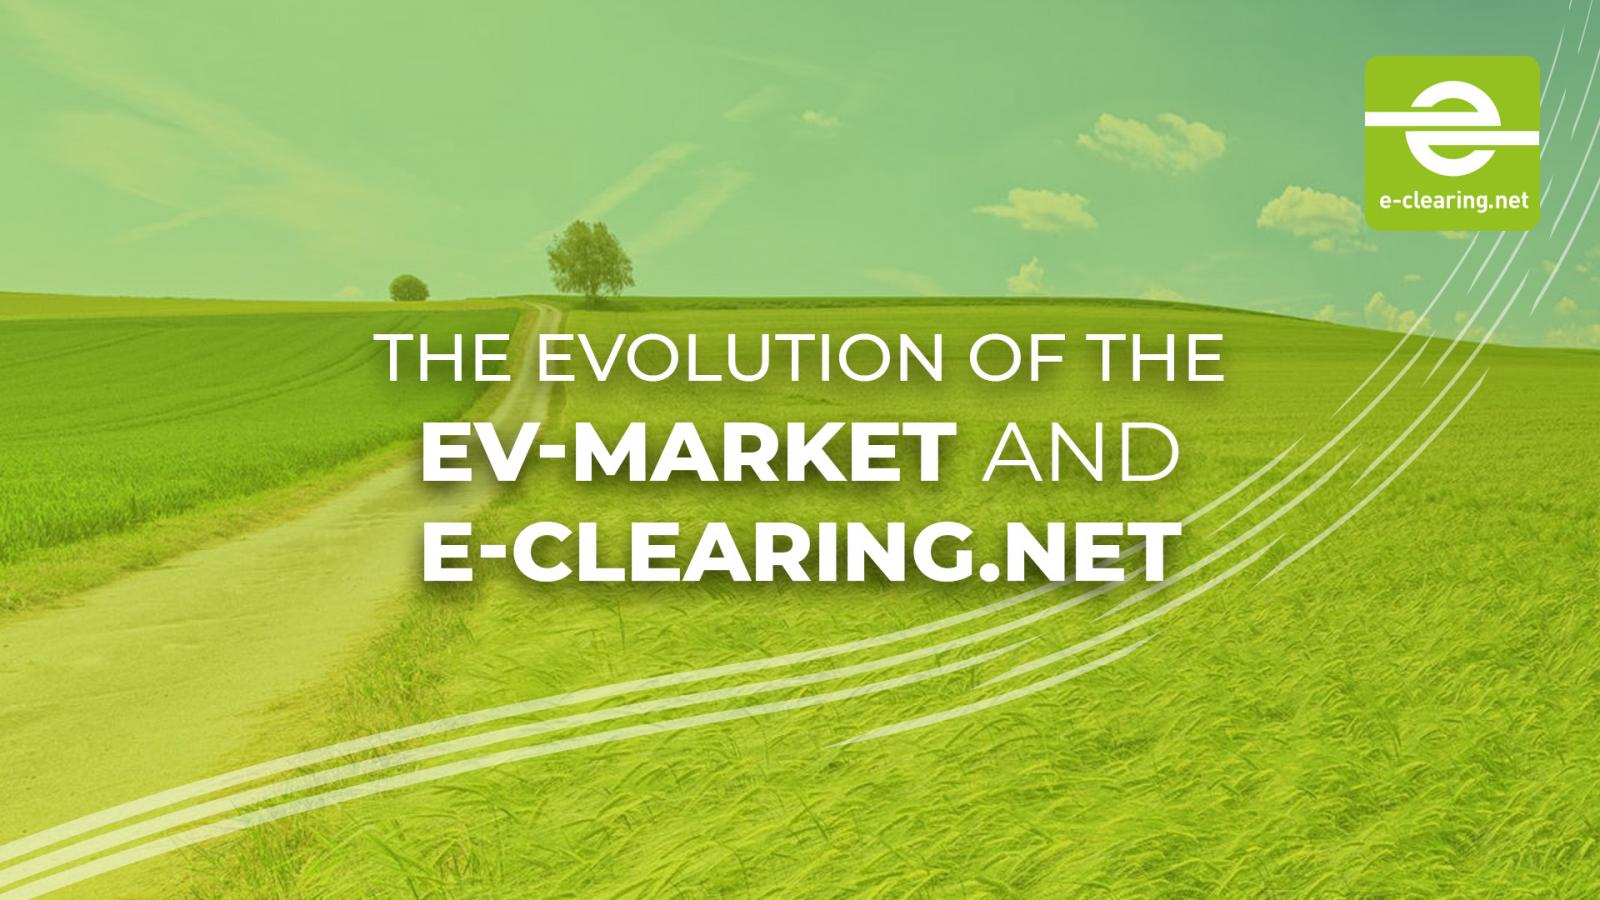 The evolution of the EV-market and e-clearing.net